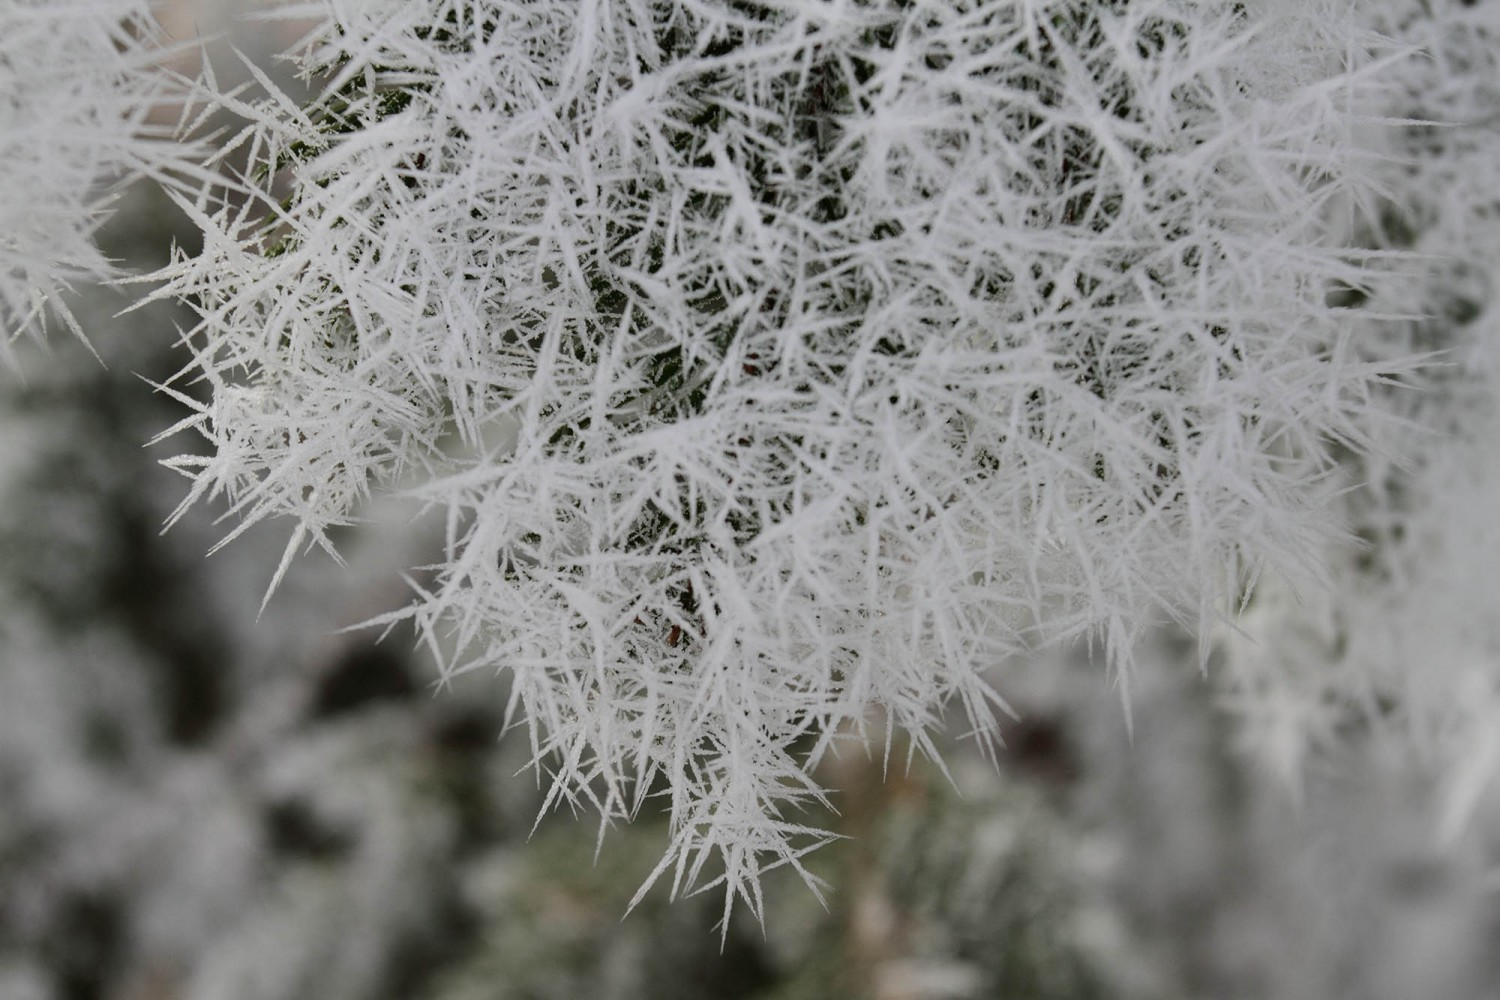 Frost_24